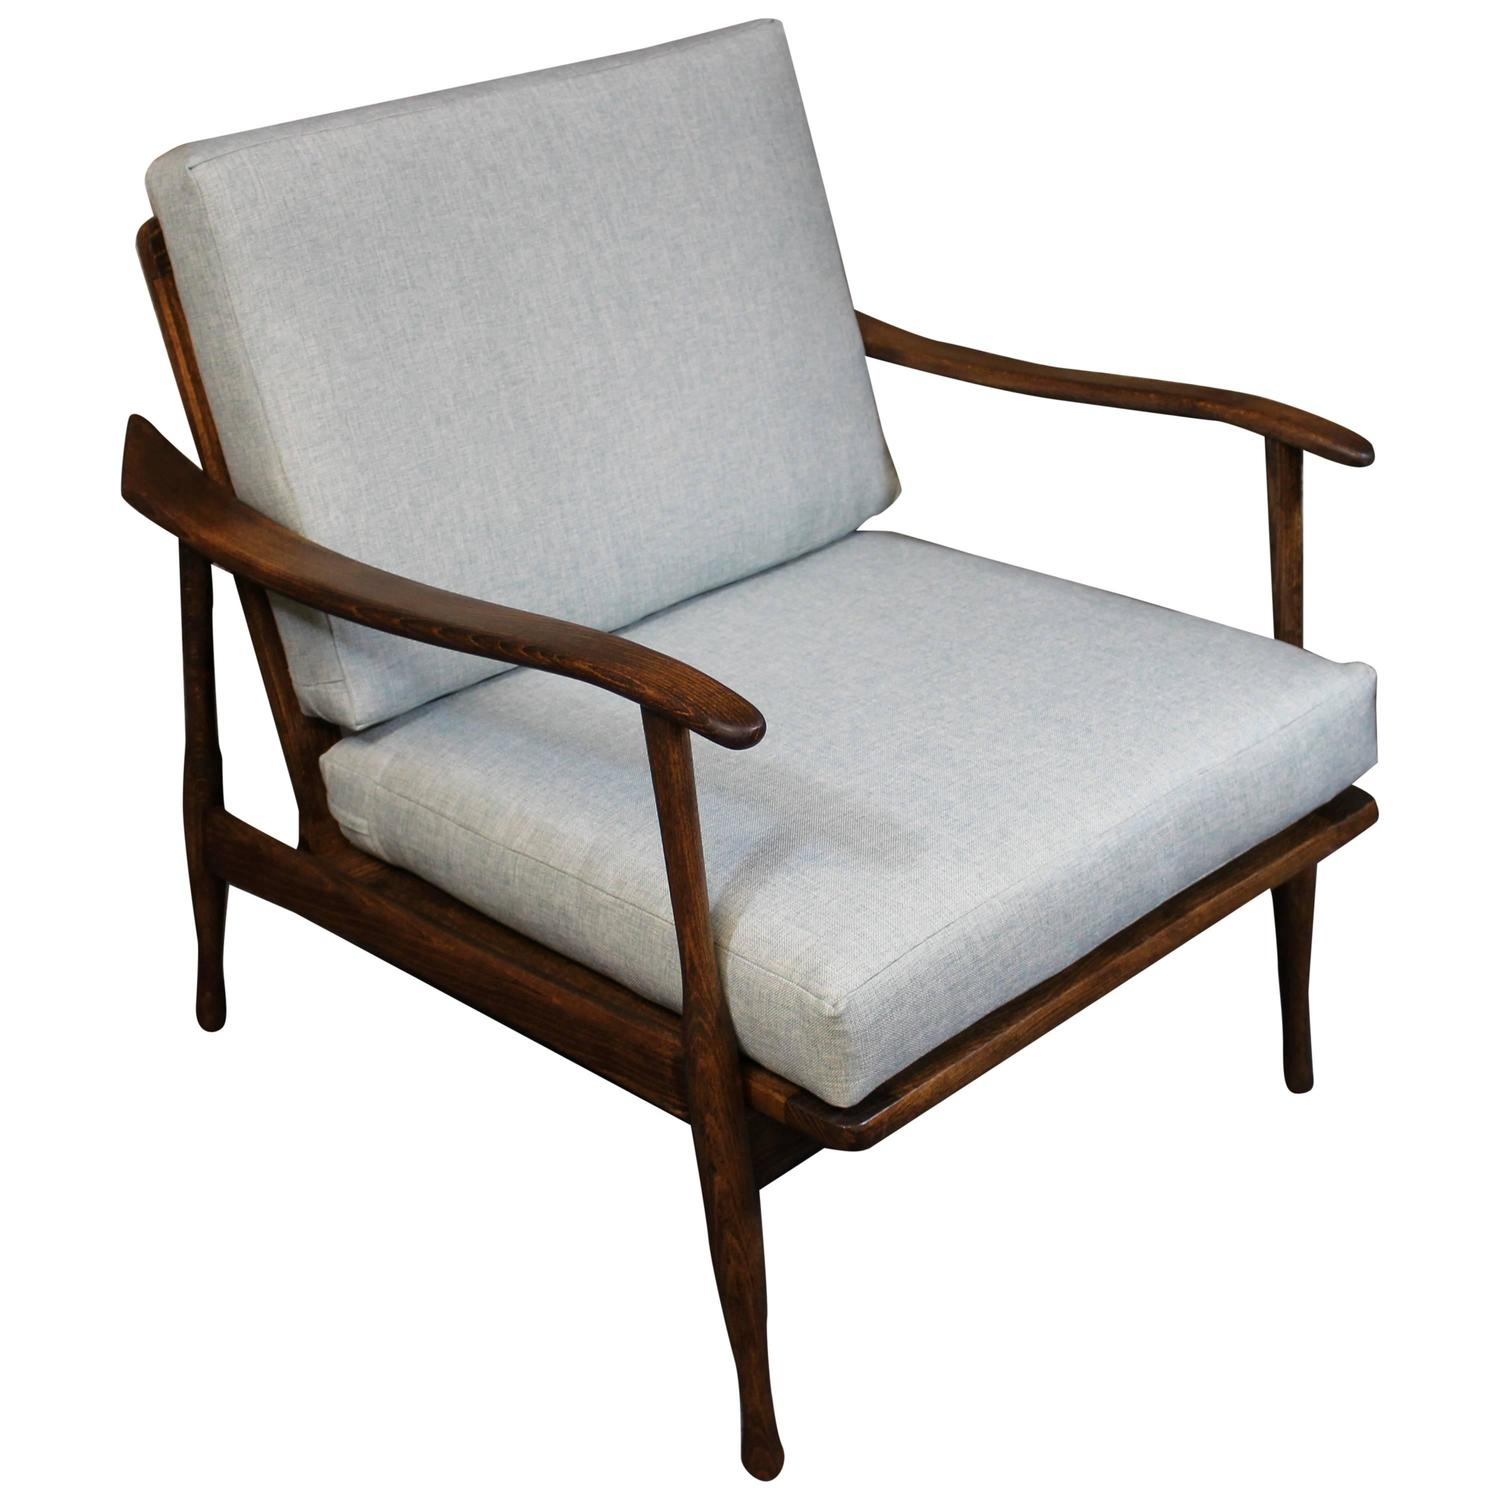 Mid century modern lounge chair at 1stdibs for Modern lounge furniture